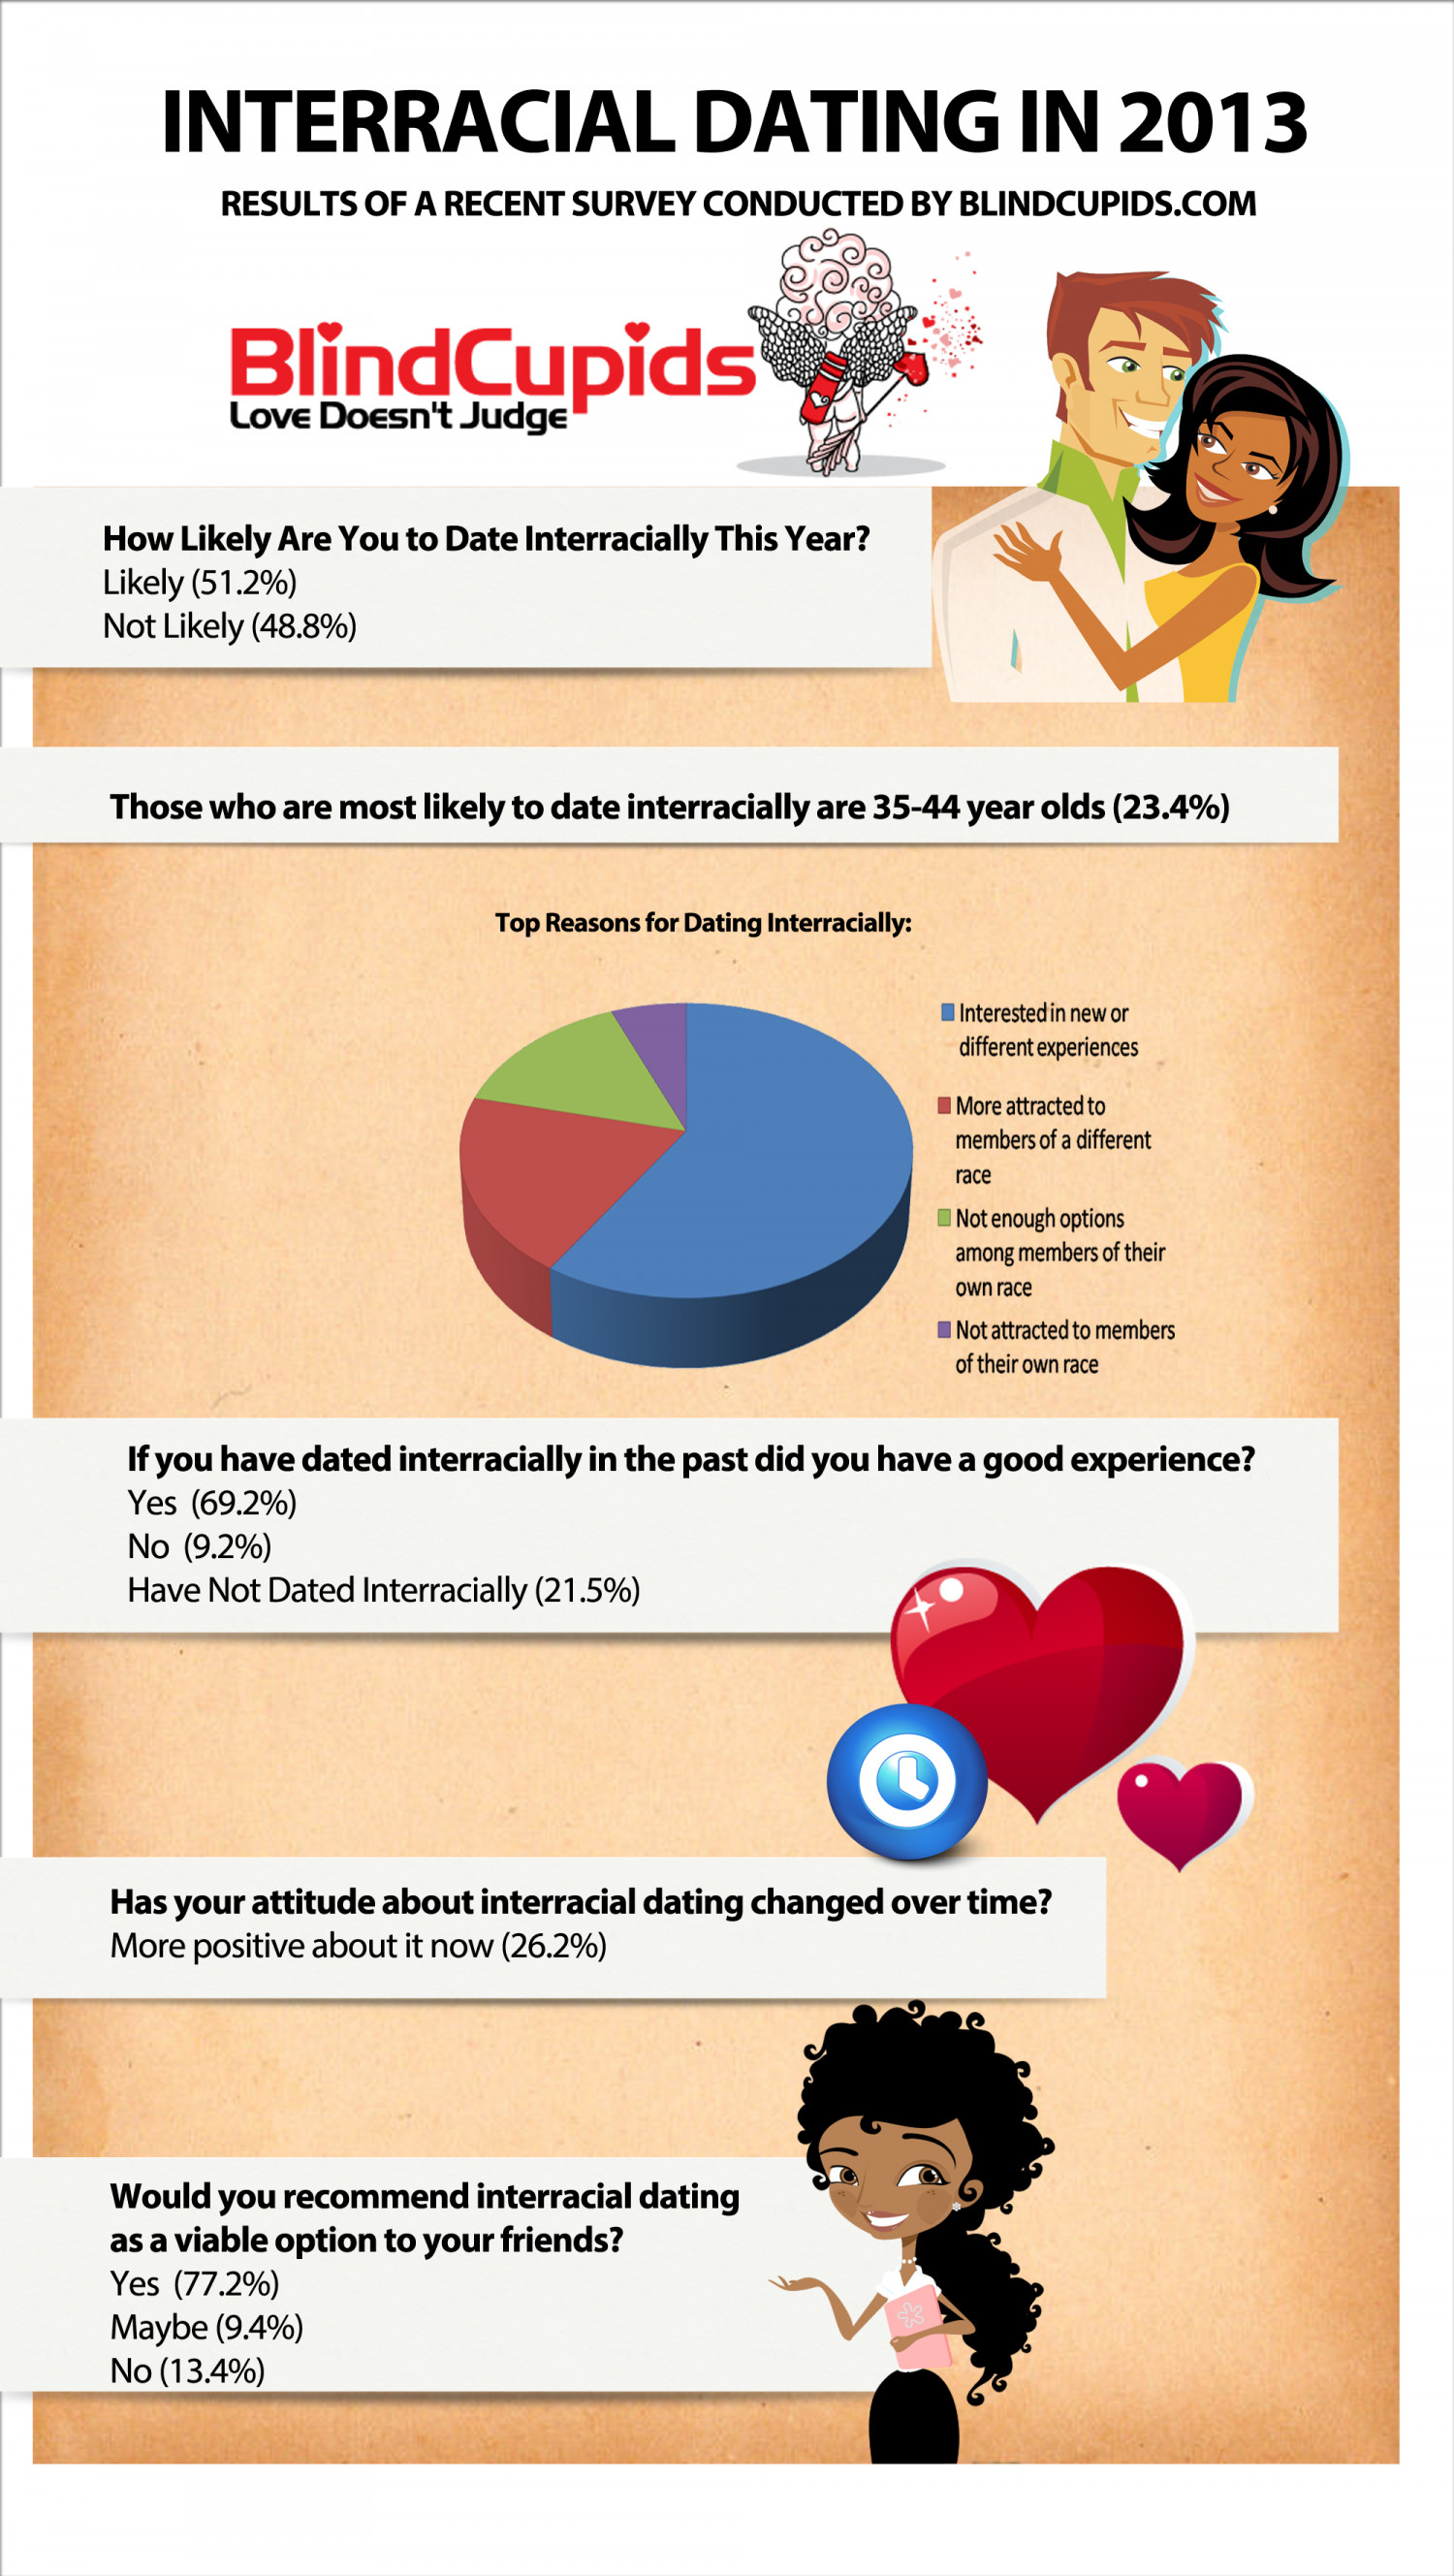 Interracial Dating in 2013 Infographic